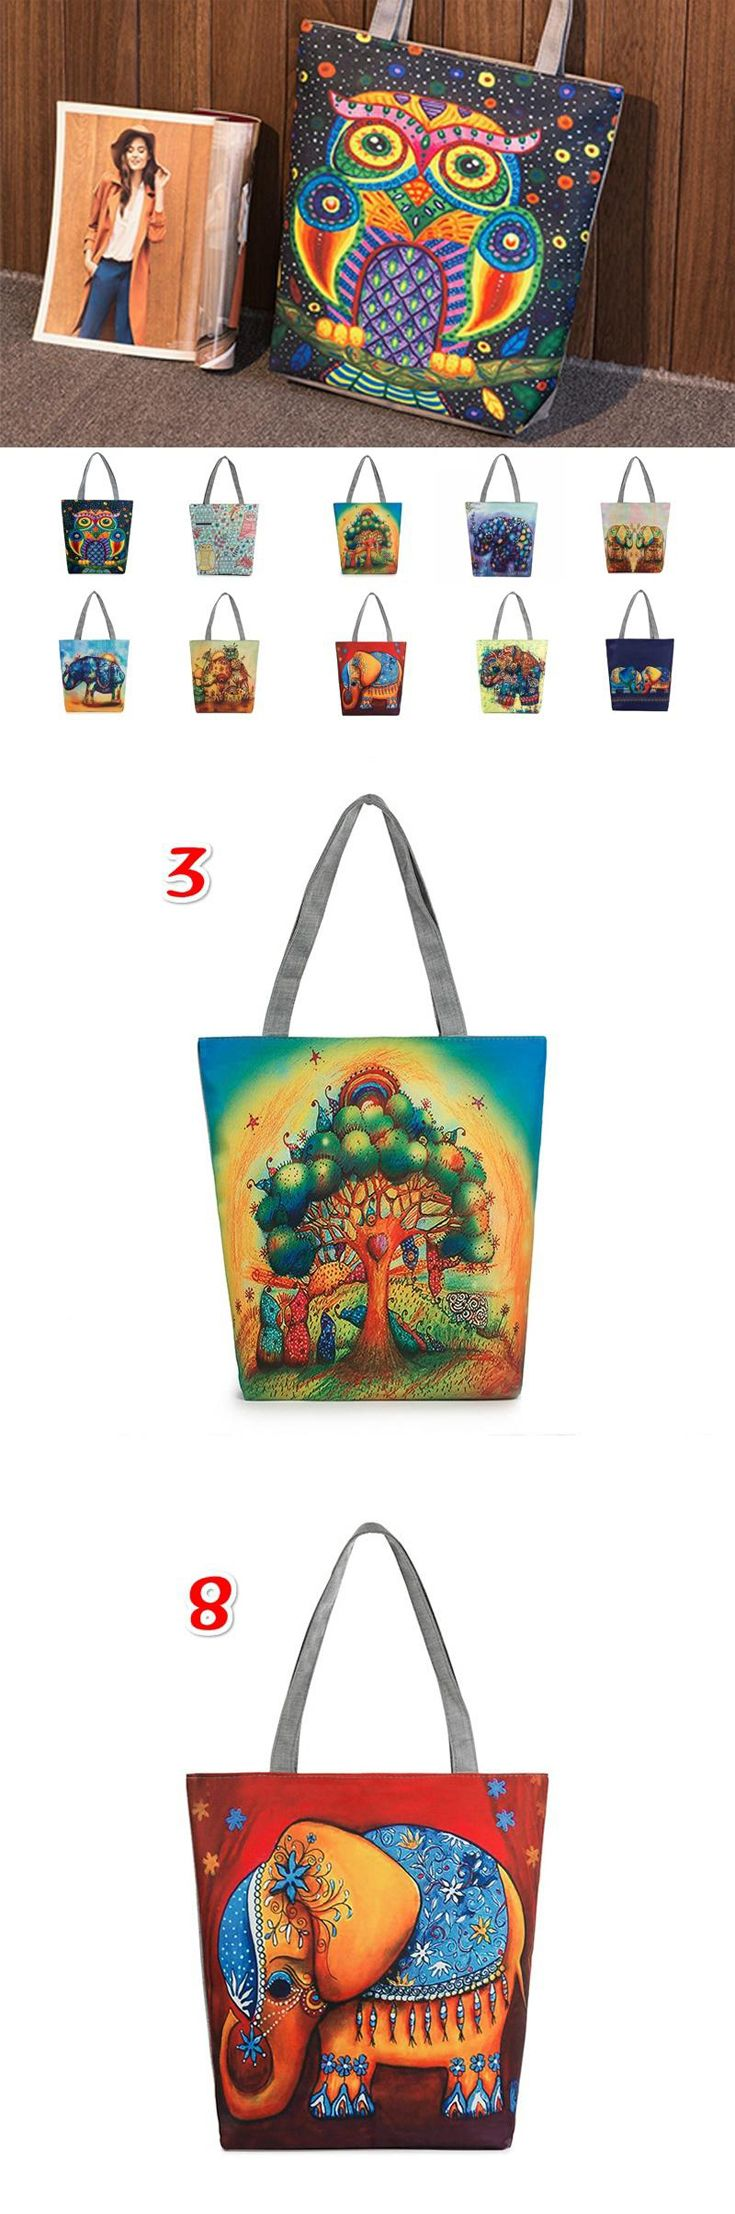 Women #Canvas Beach #Bag #Cartoon #Owl Printed #Casual Tote Daily Use Single #Shoulder #Shopping Bags Female #Handbag